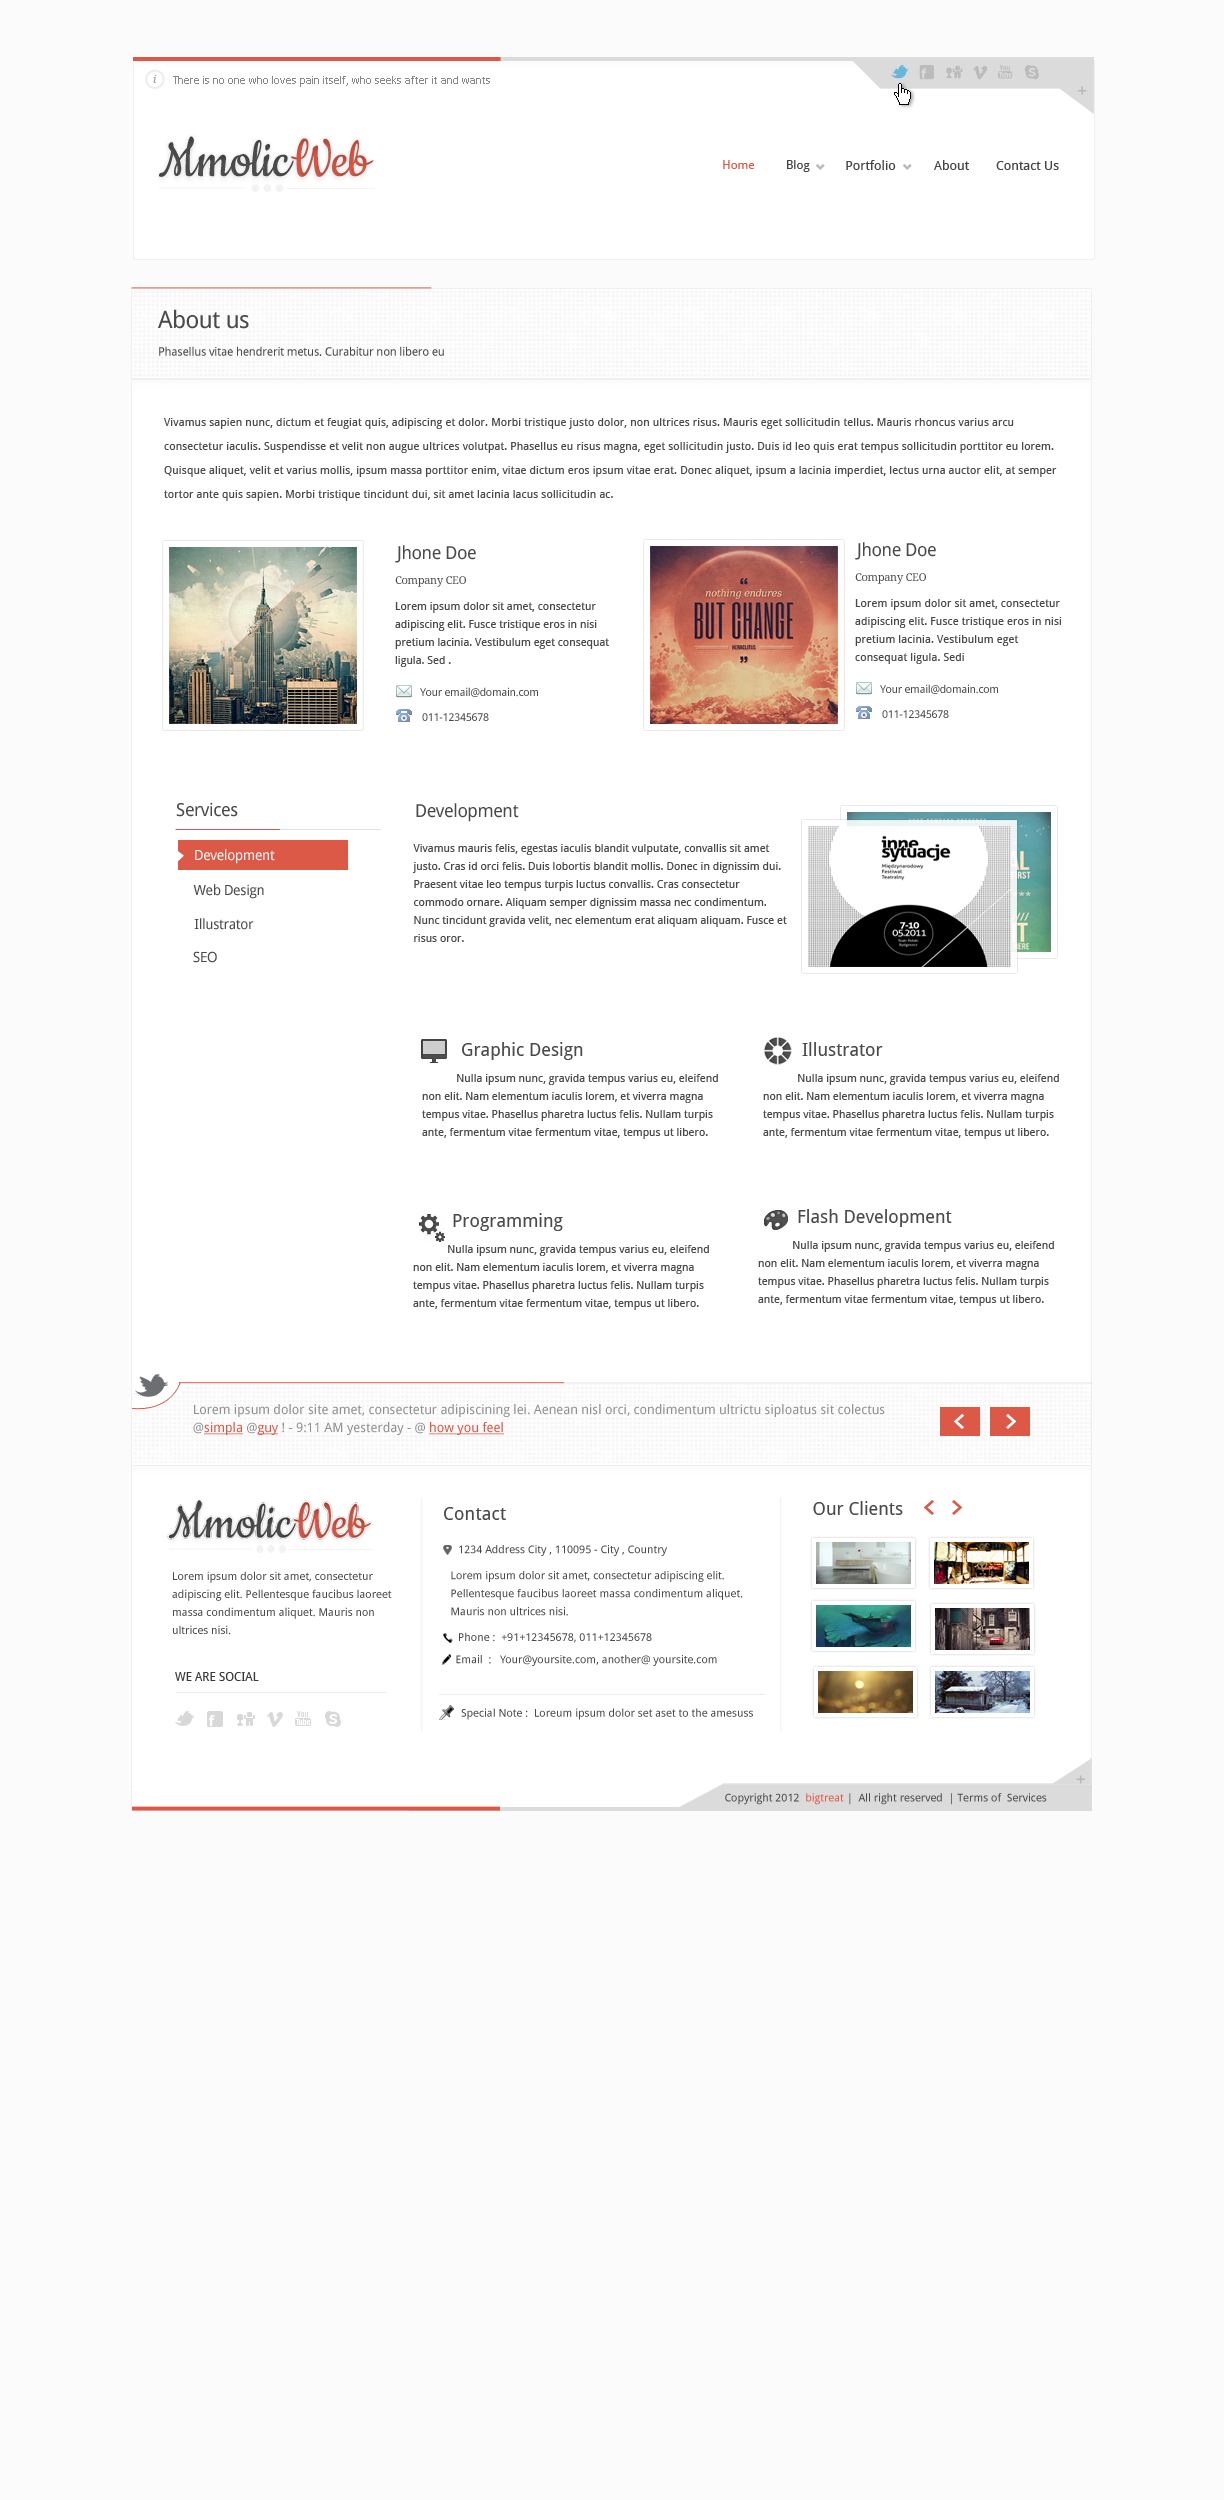 Mmolic web - Creative and Clean  Psd Template